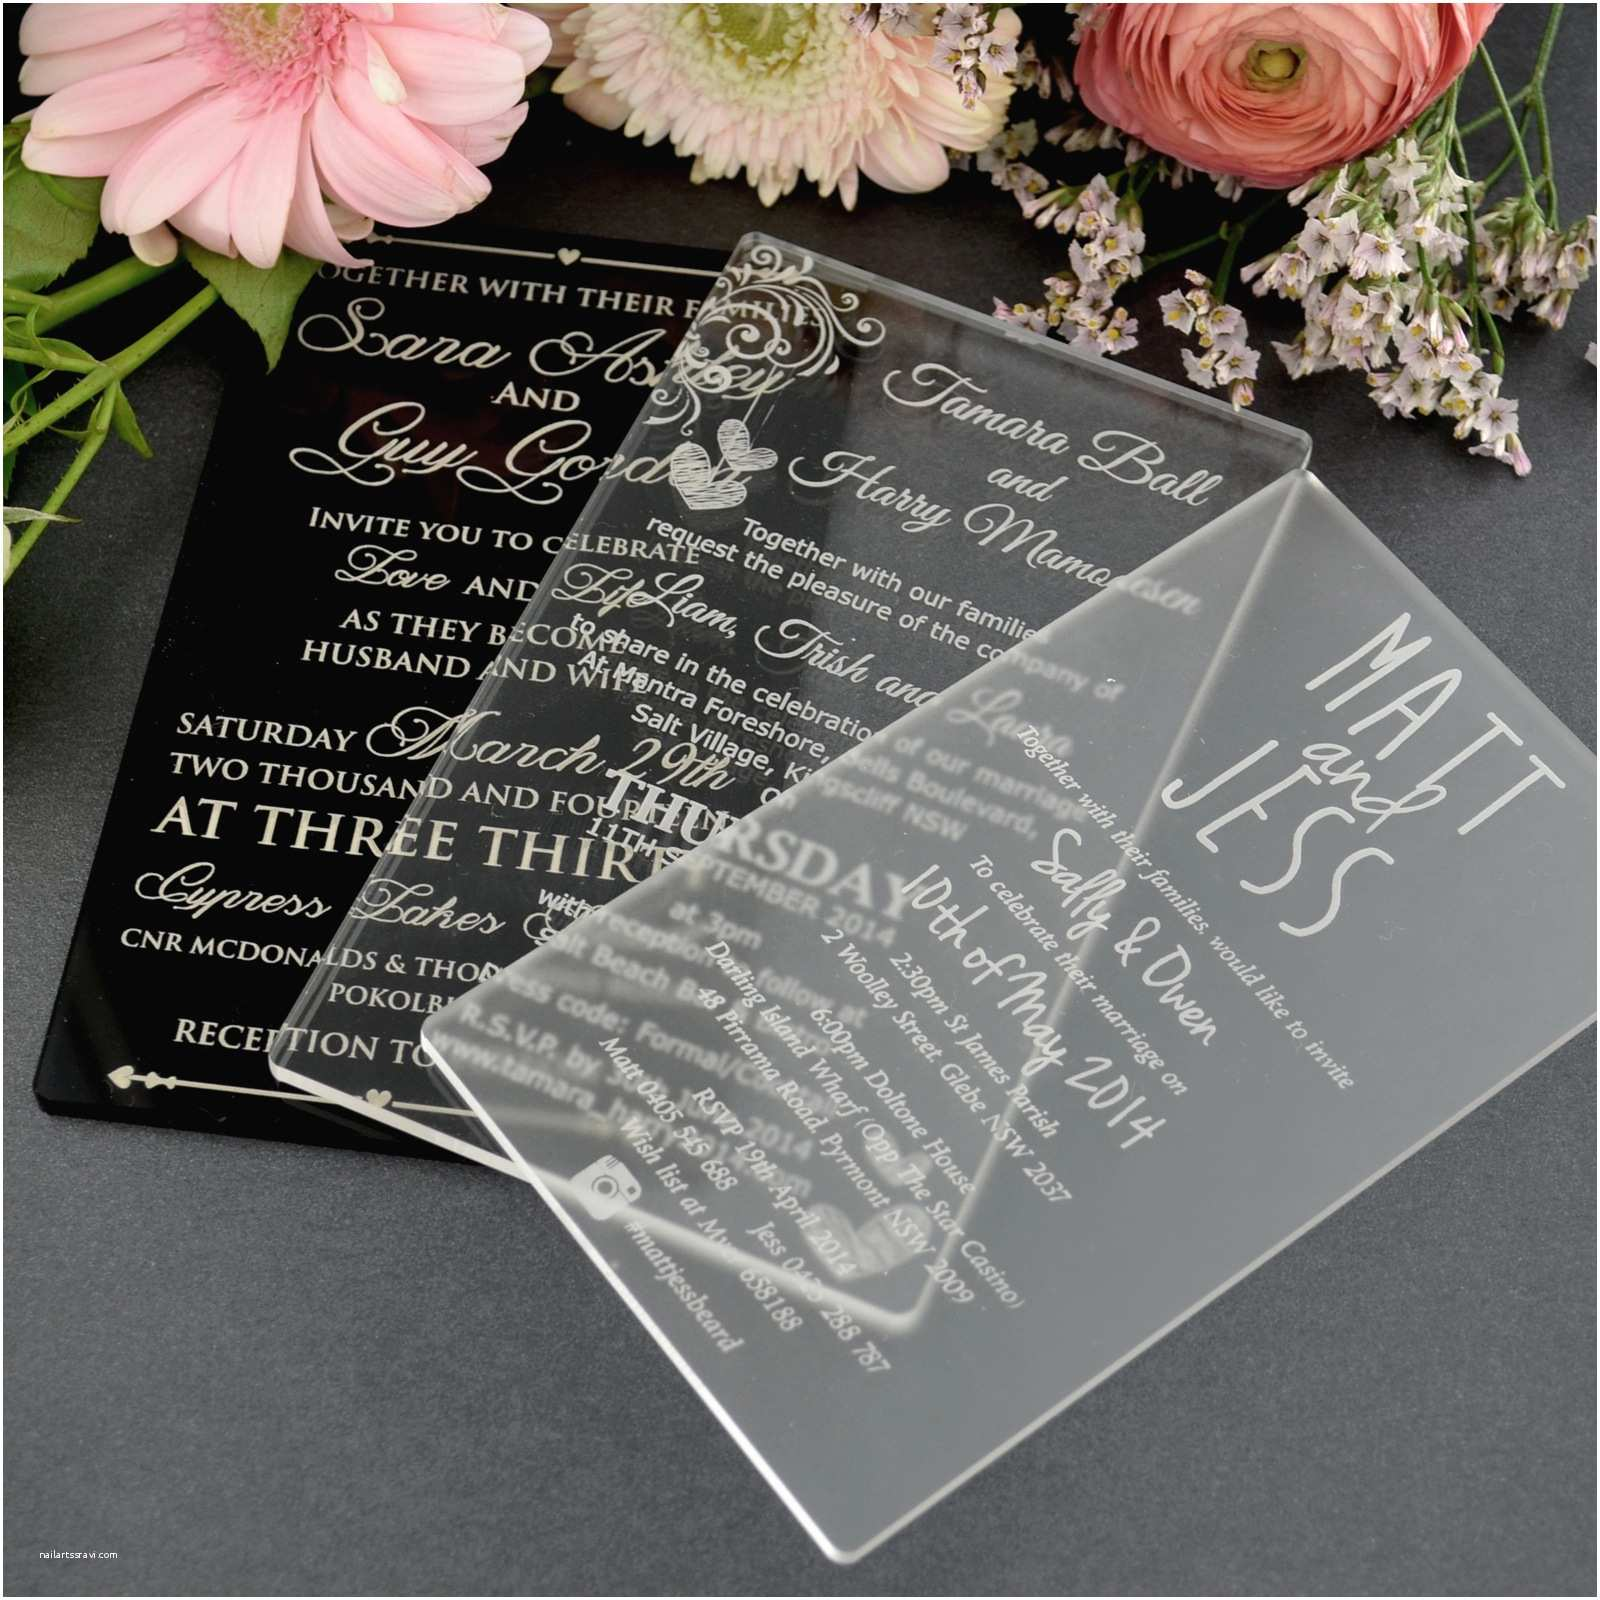 Special Wedding Invitations 11b Engraved Acrylic Wedding Invitations Unique Wedding